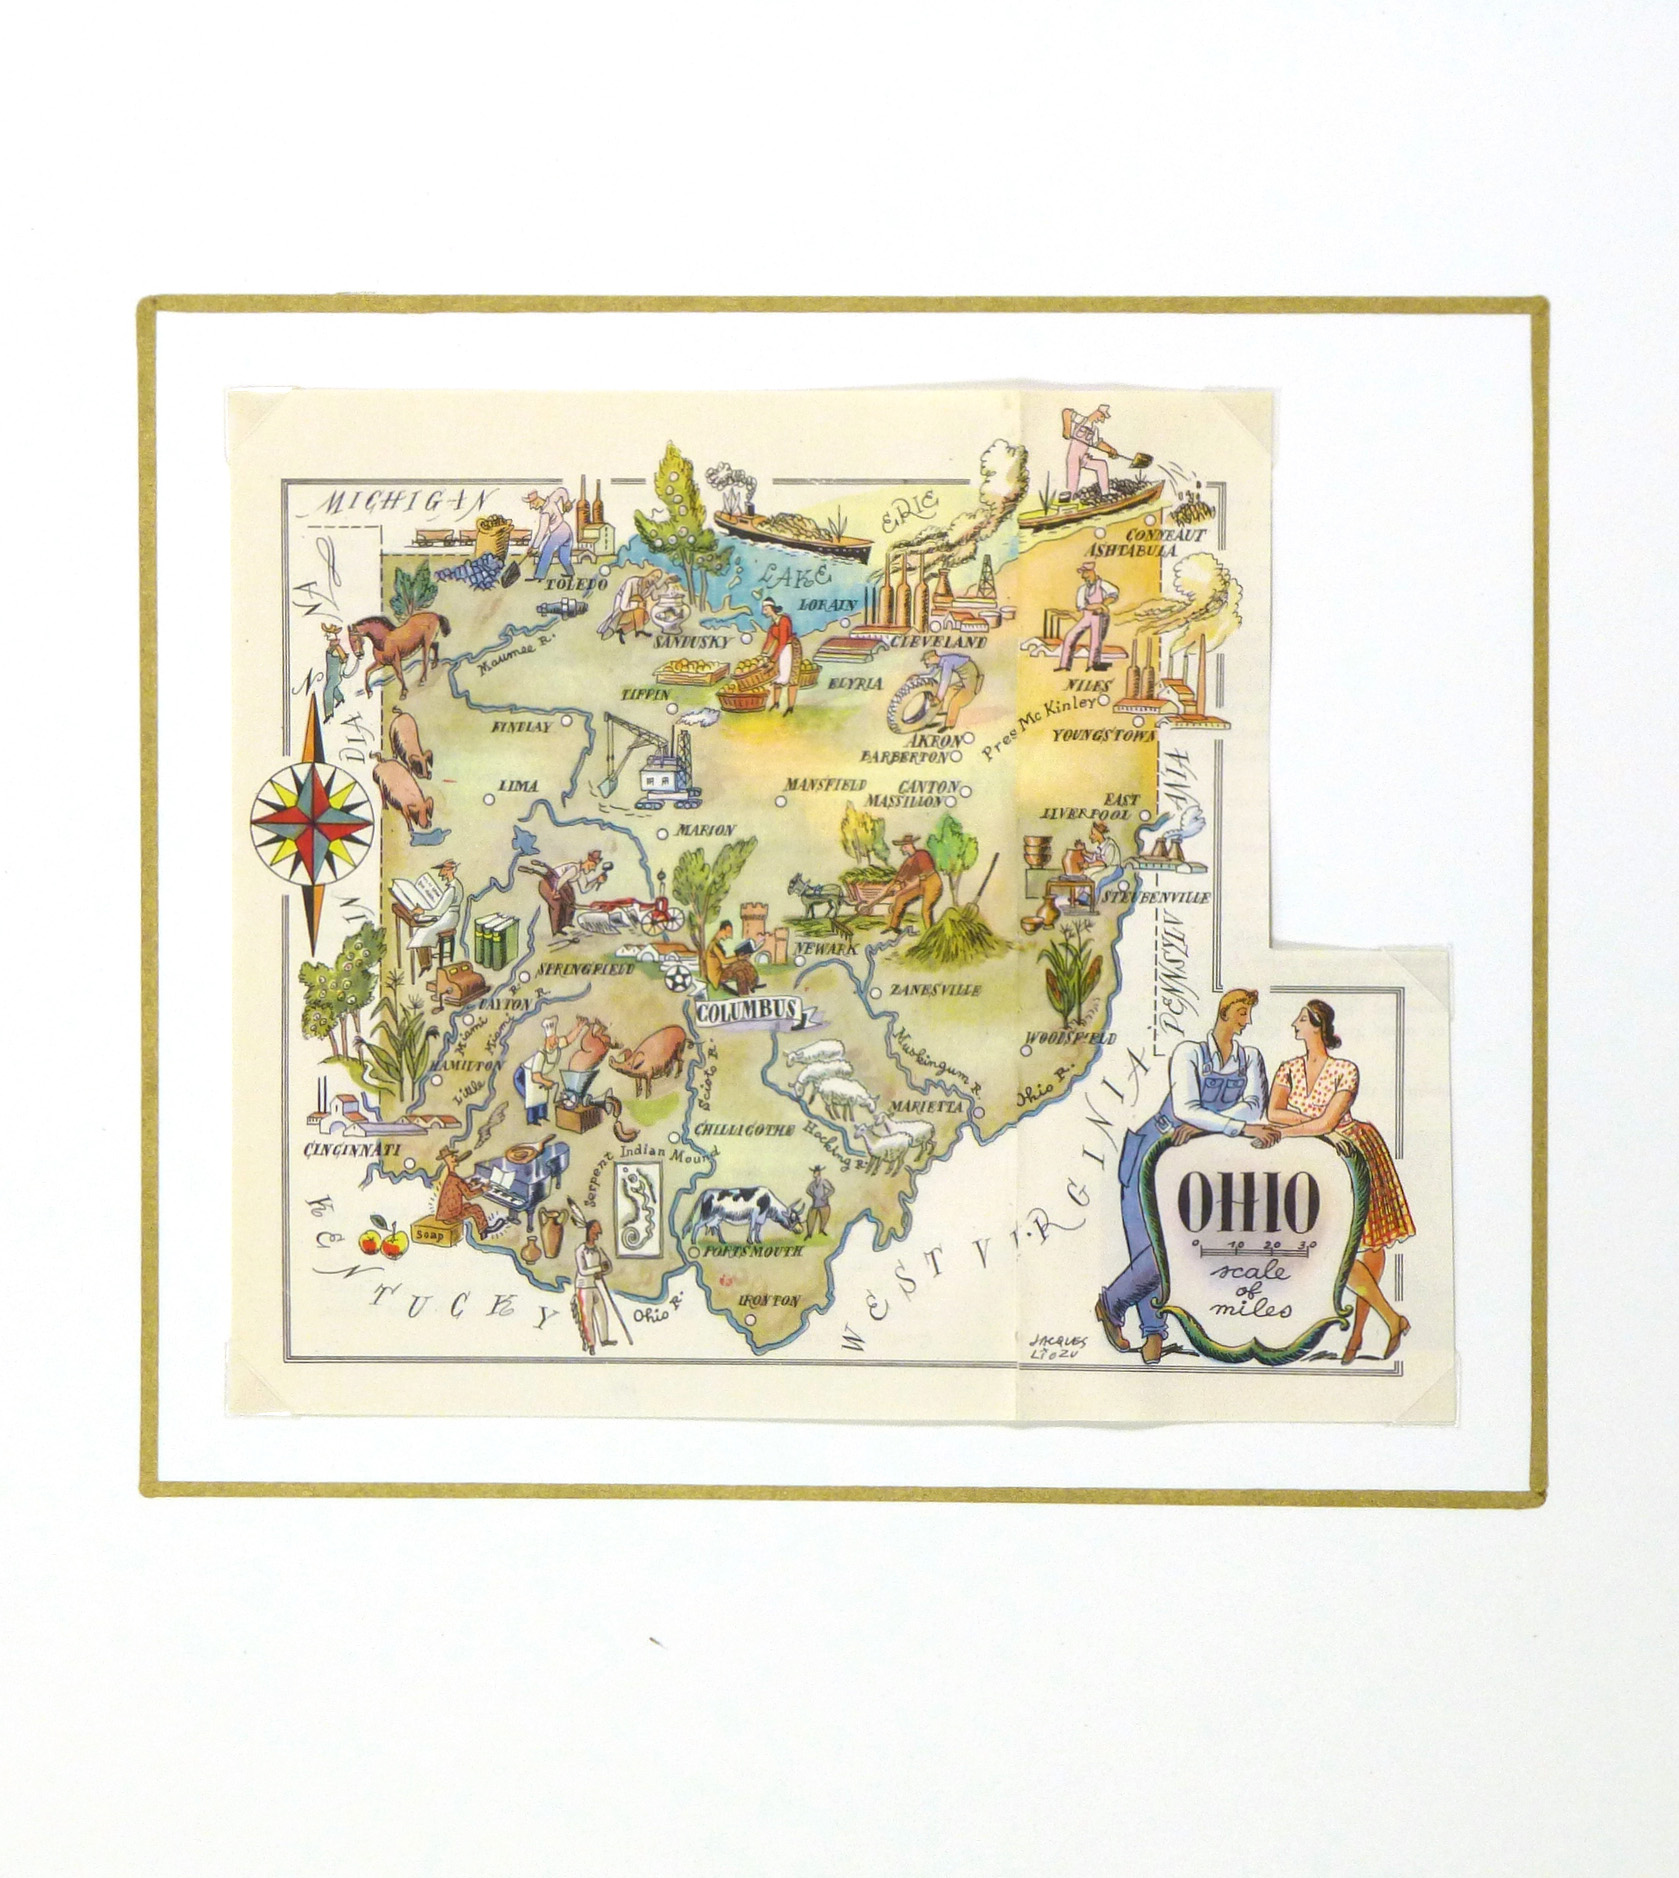 Ohio Pictorial Map, 1946-matted-6280K